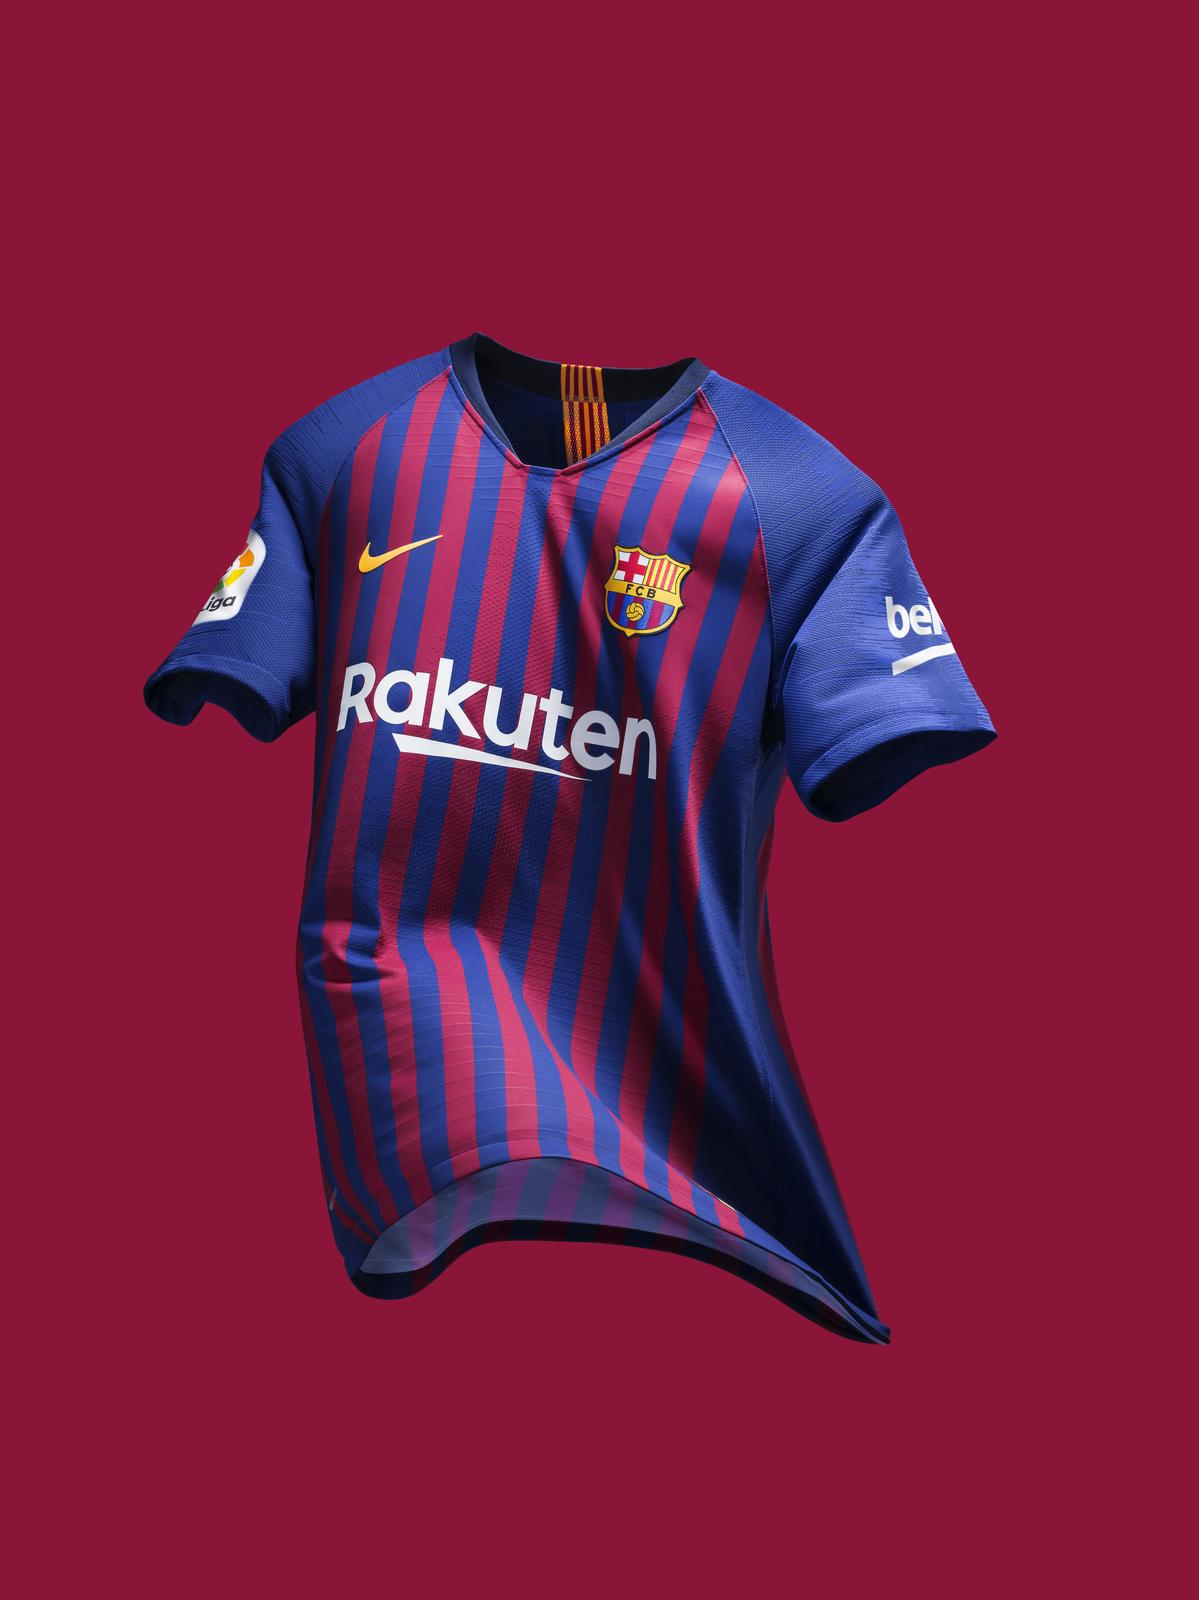 7432fcd6f The the 2018 19 Blaugrana home jersey is inspired by Camp Nou s uniting  force against the city s 10 districts  Les Corts